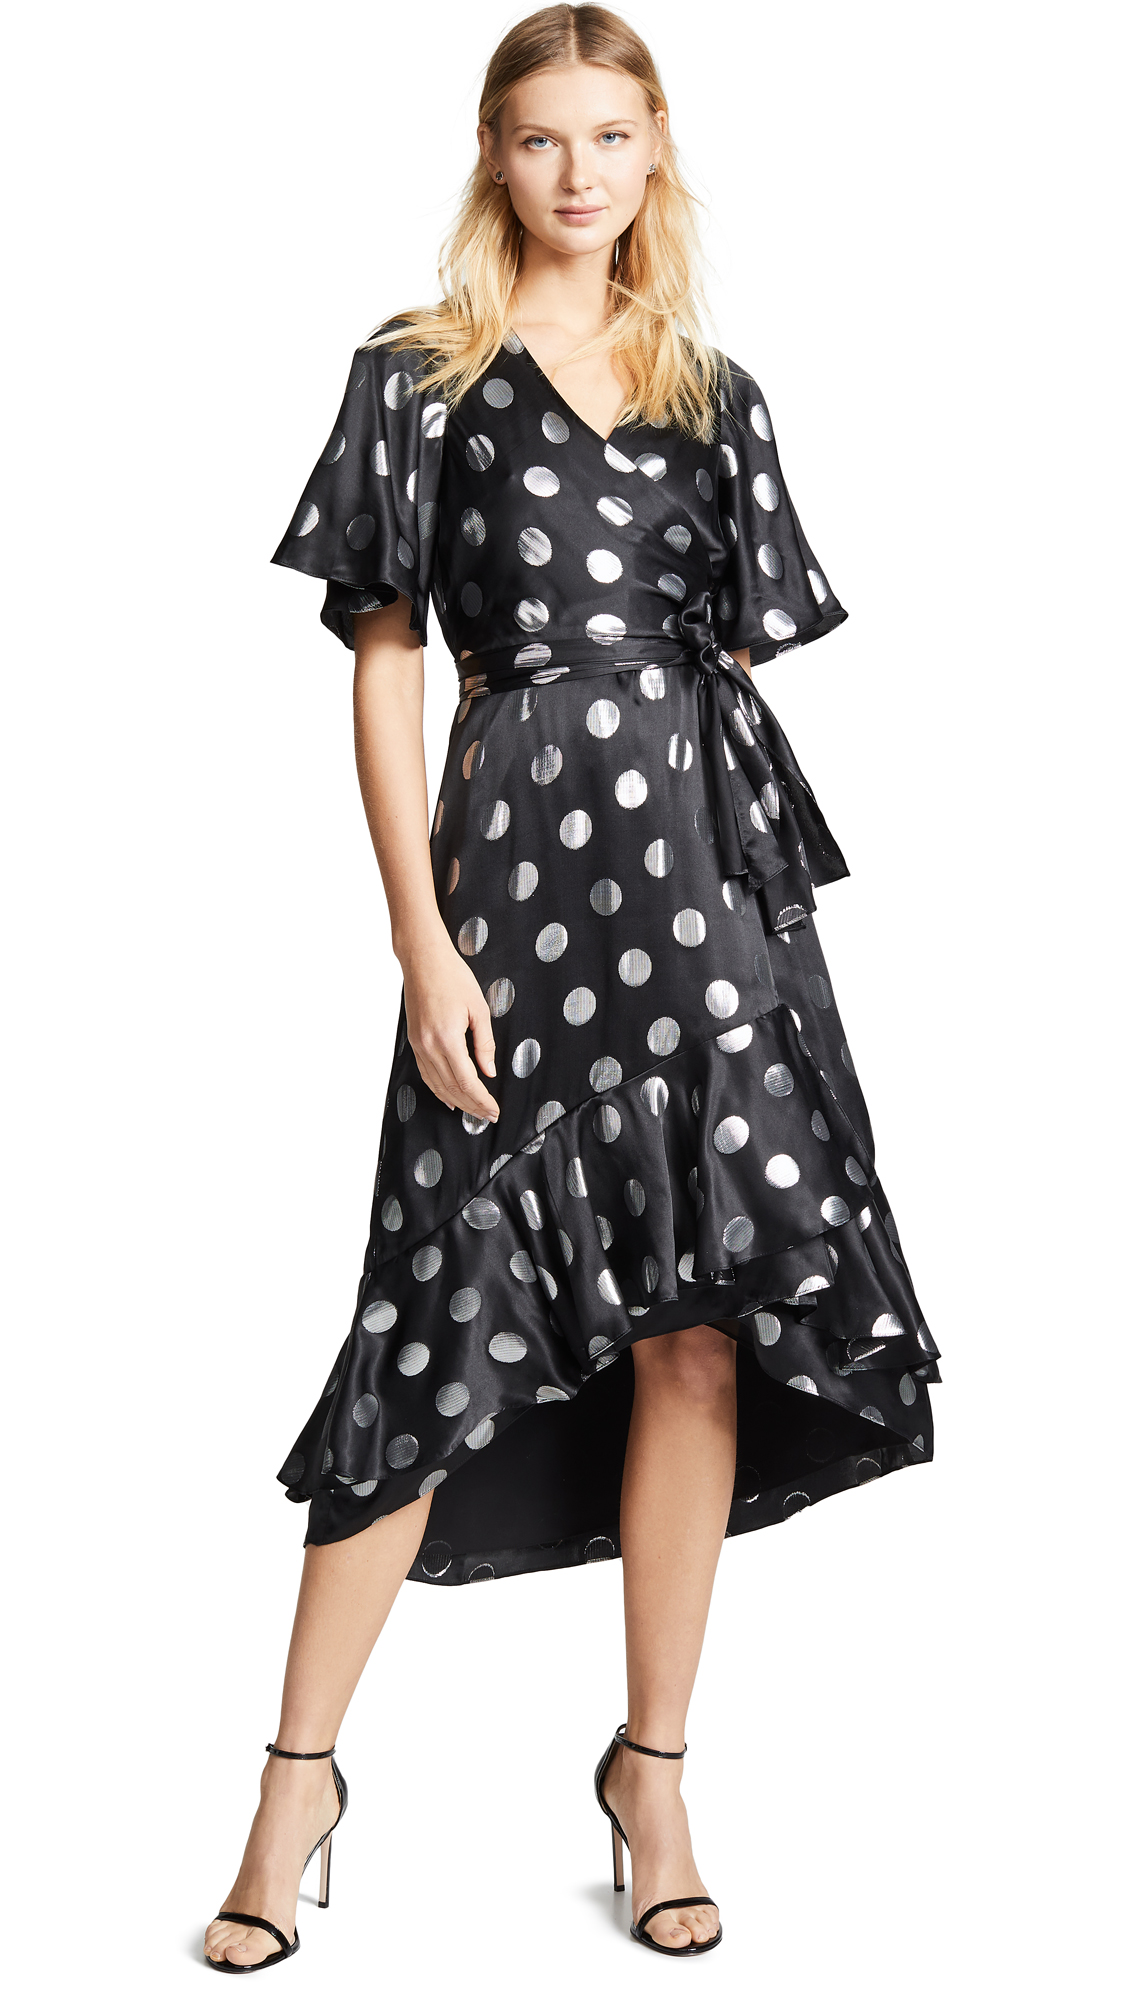 Diane von Furstenberg Sareth Dress - Black/Silver